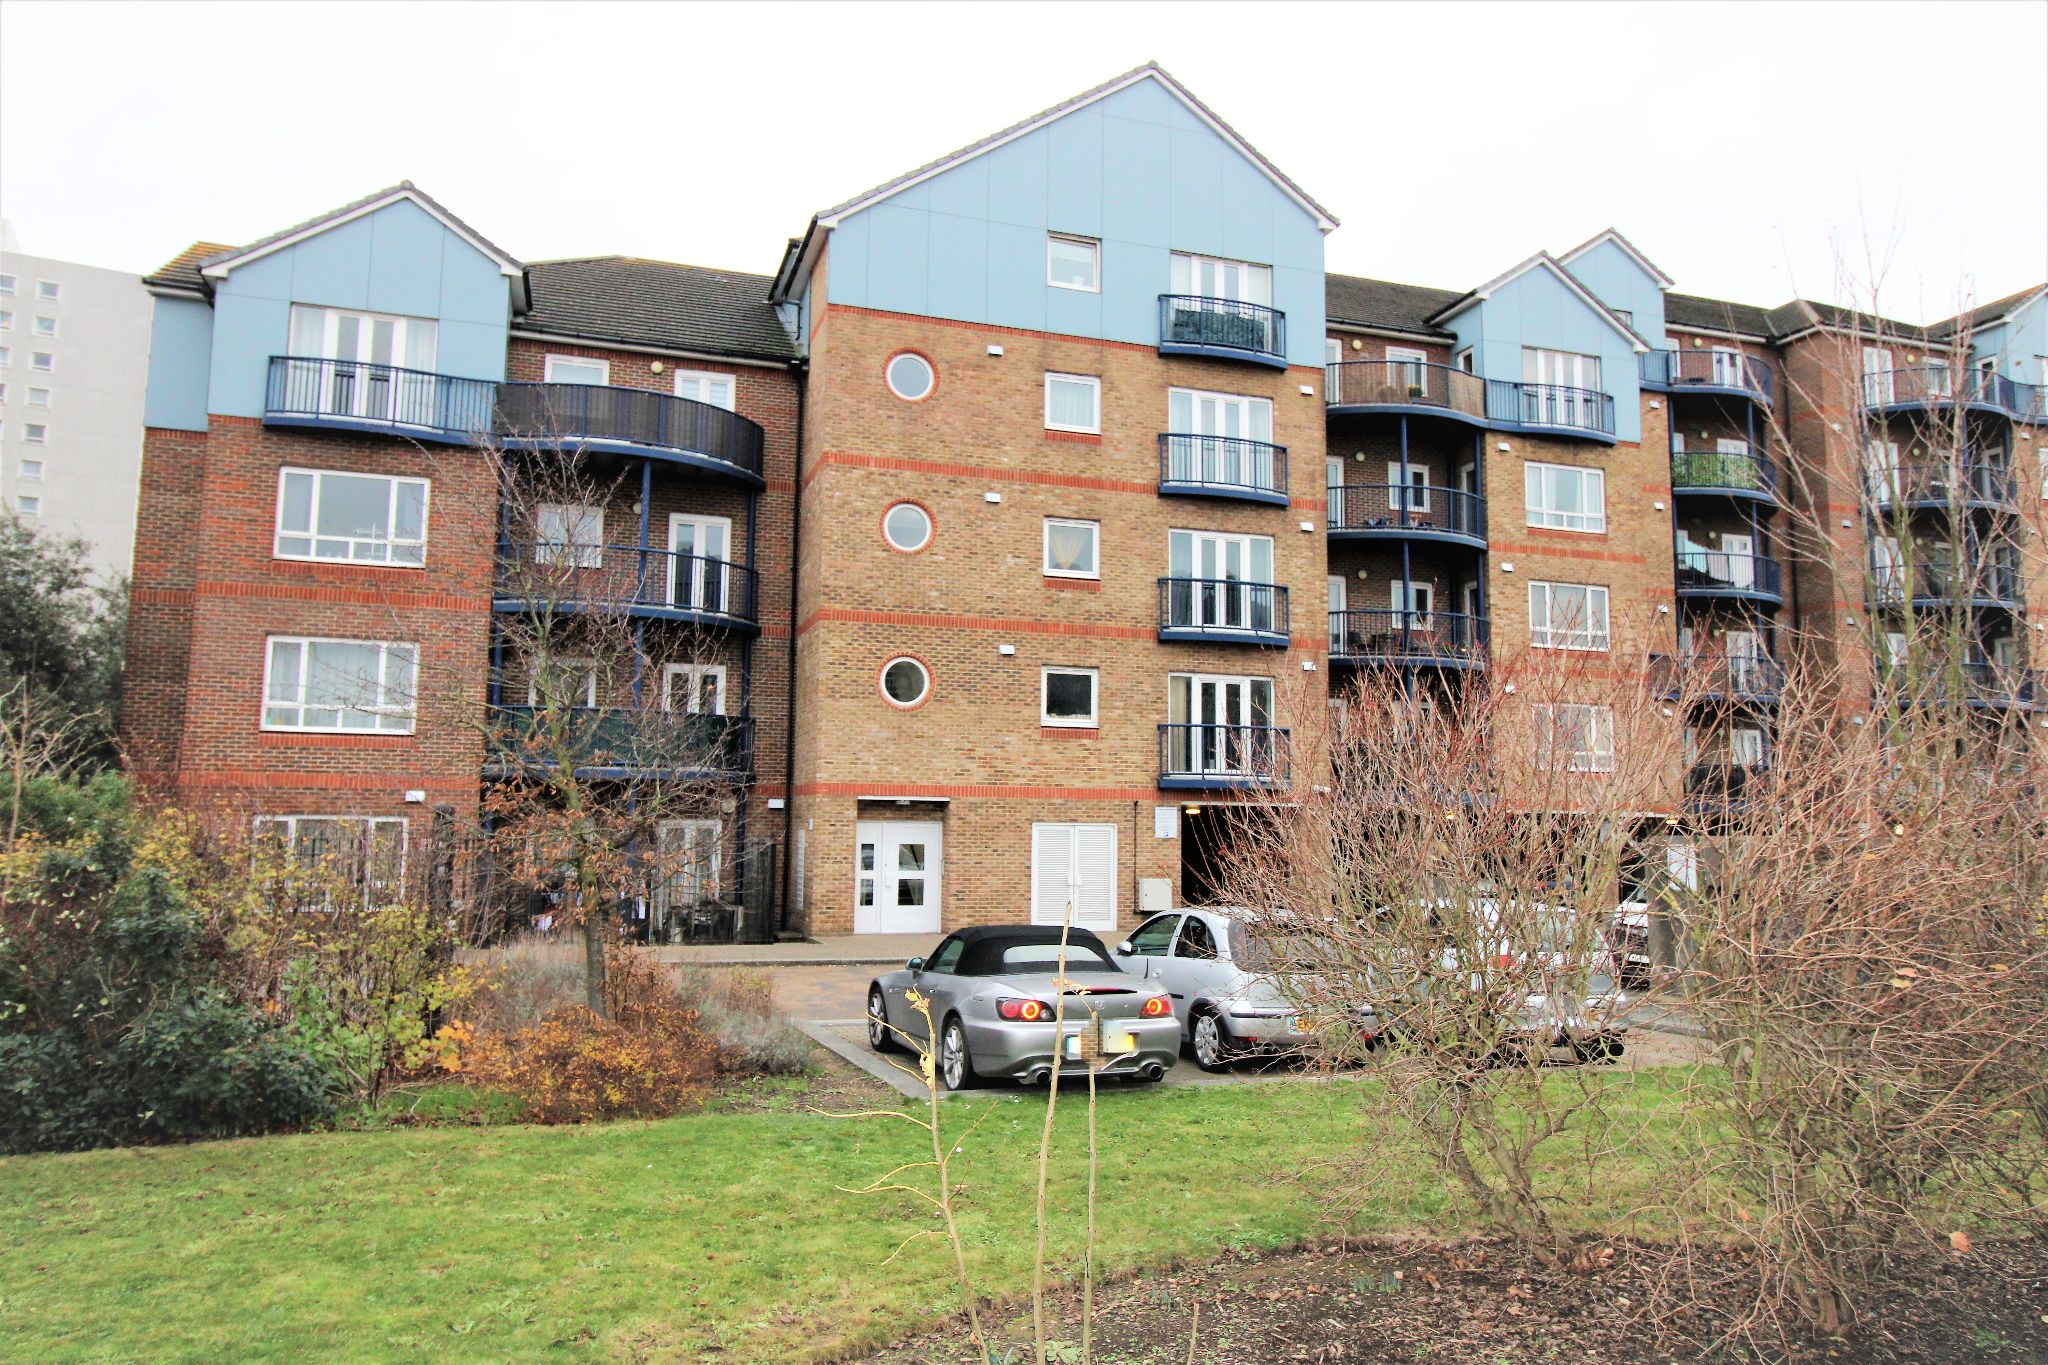 1 Bedroom Apartment Flat/apartment For Sale - Photograph 1